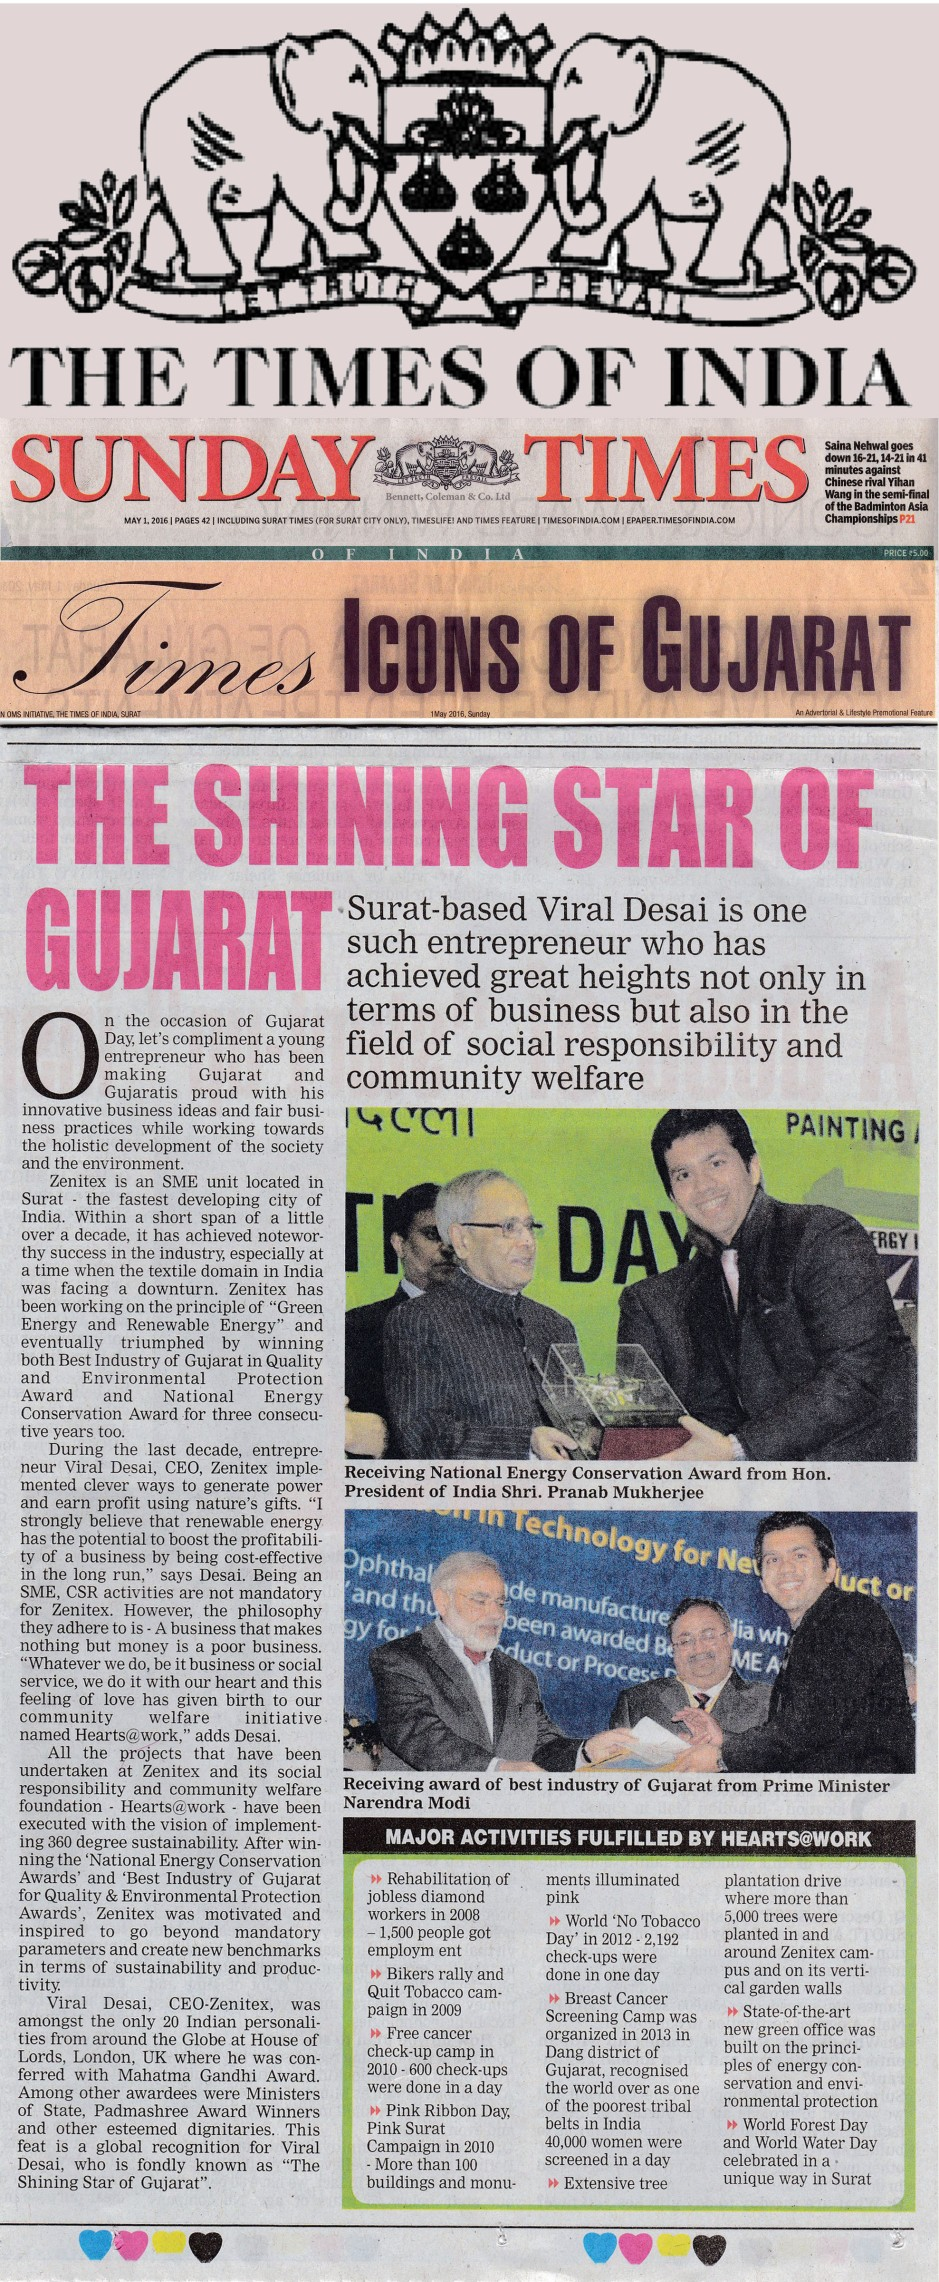 toi shining star of gujarat viral desai 010516 - 4 JPG FEATURED IMAGE